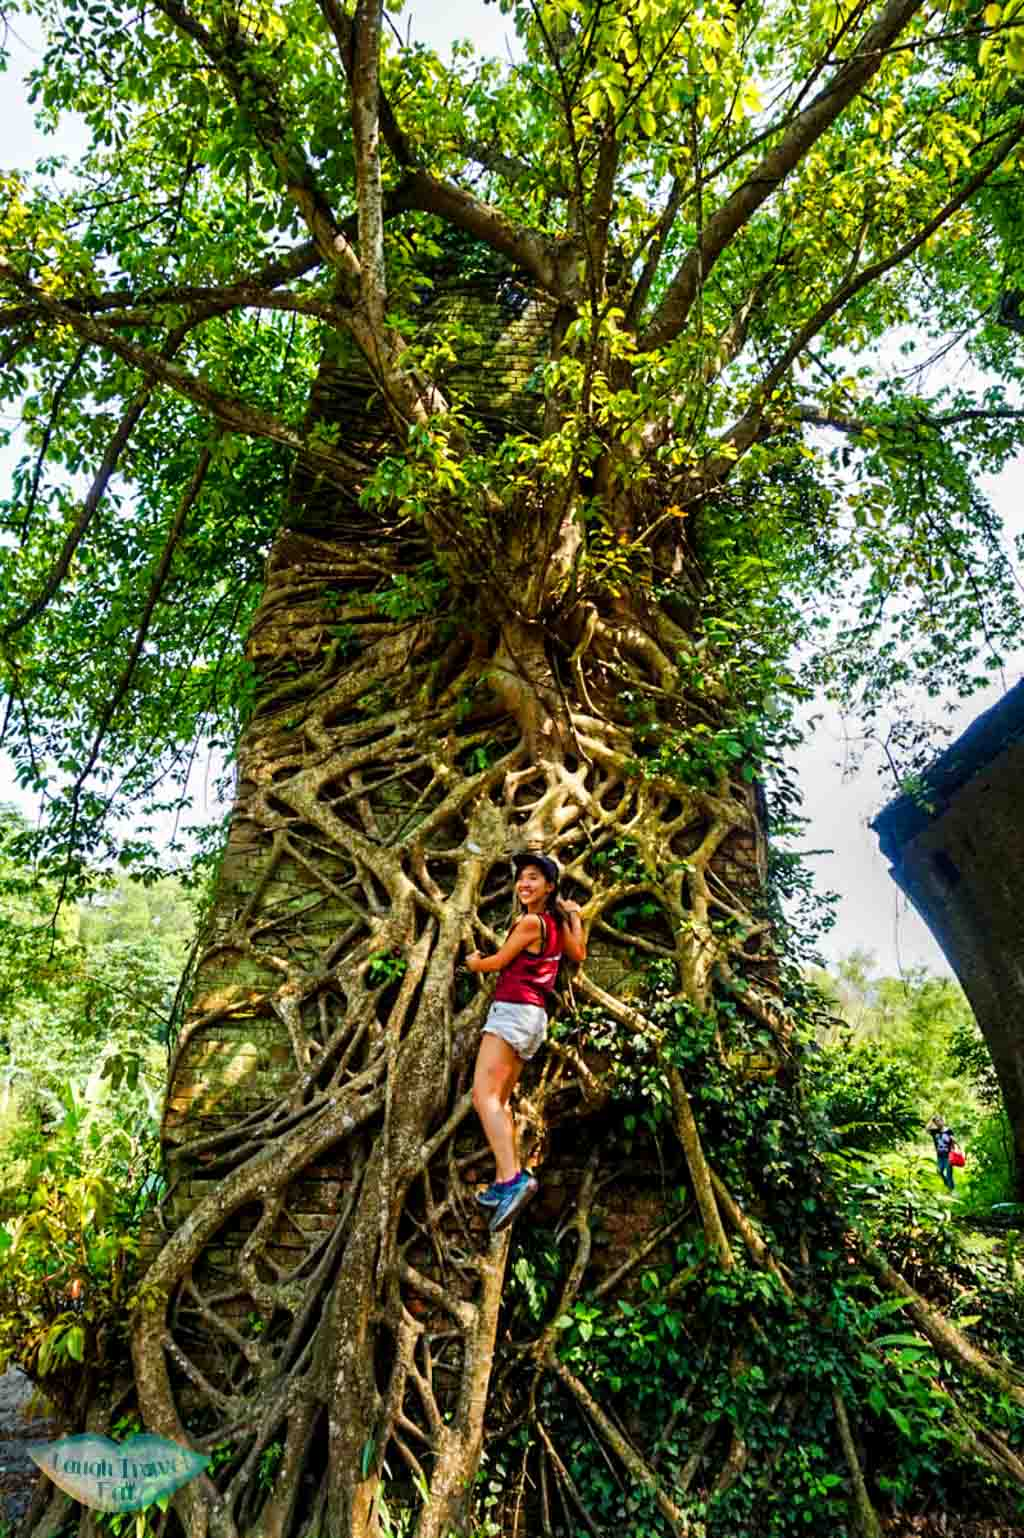 Climbing up half way up a tree on one of the Longteng Bridge ruin in Taichung Taiwan | Laugh Travel Eat